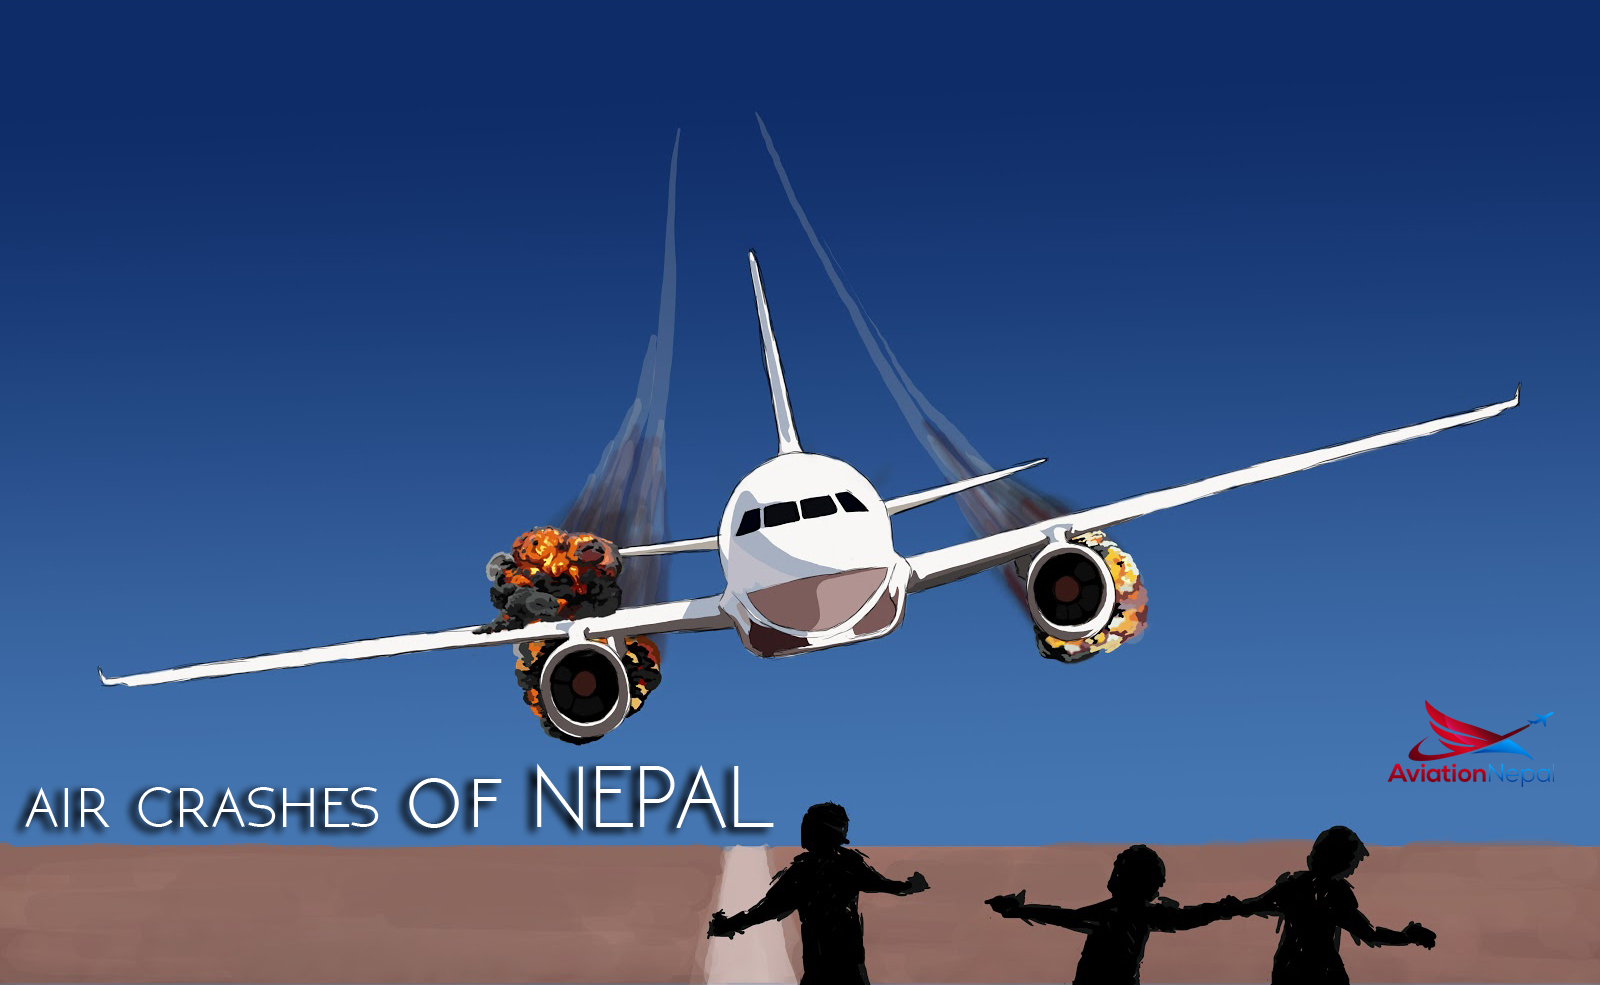 Air Crash - Aviation Nepal